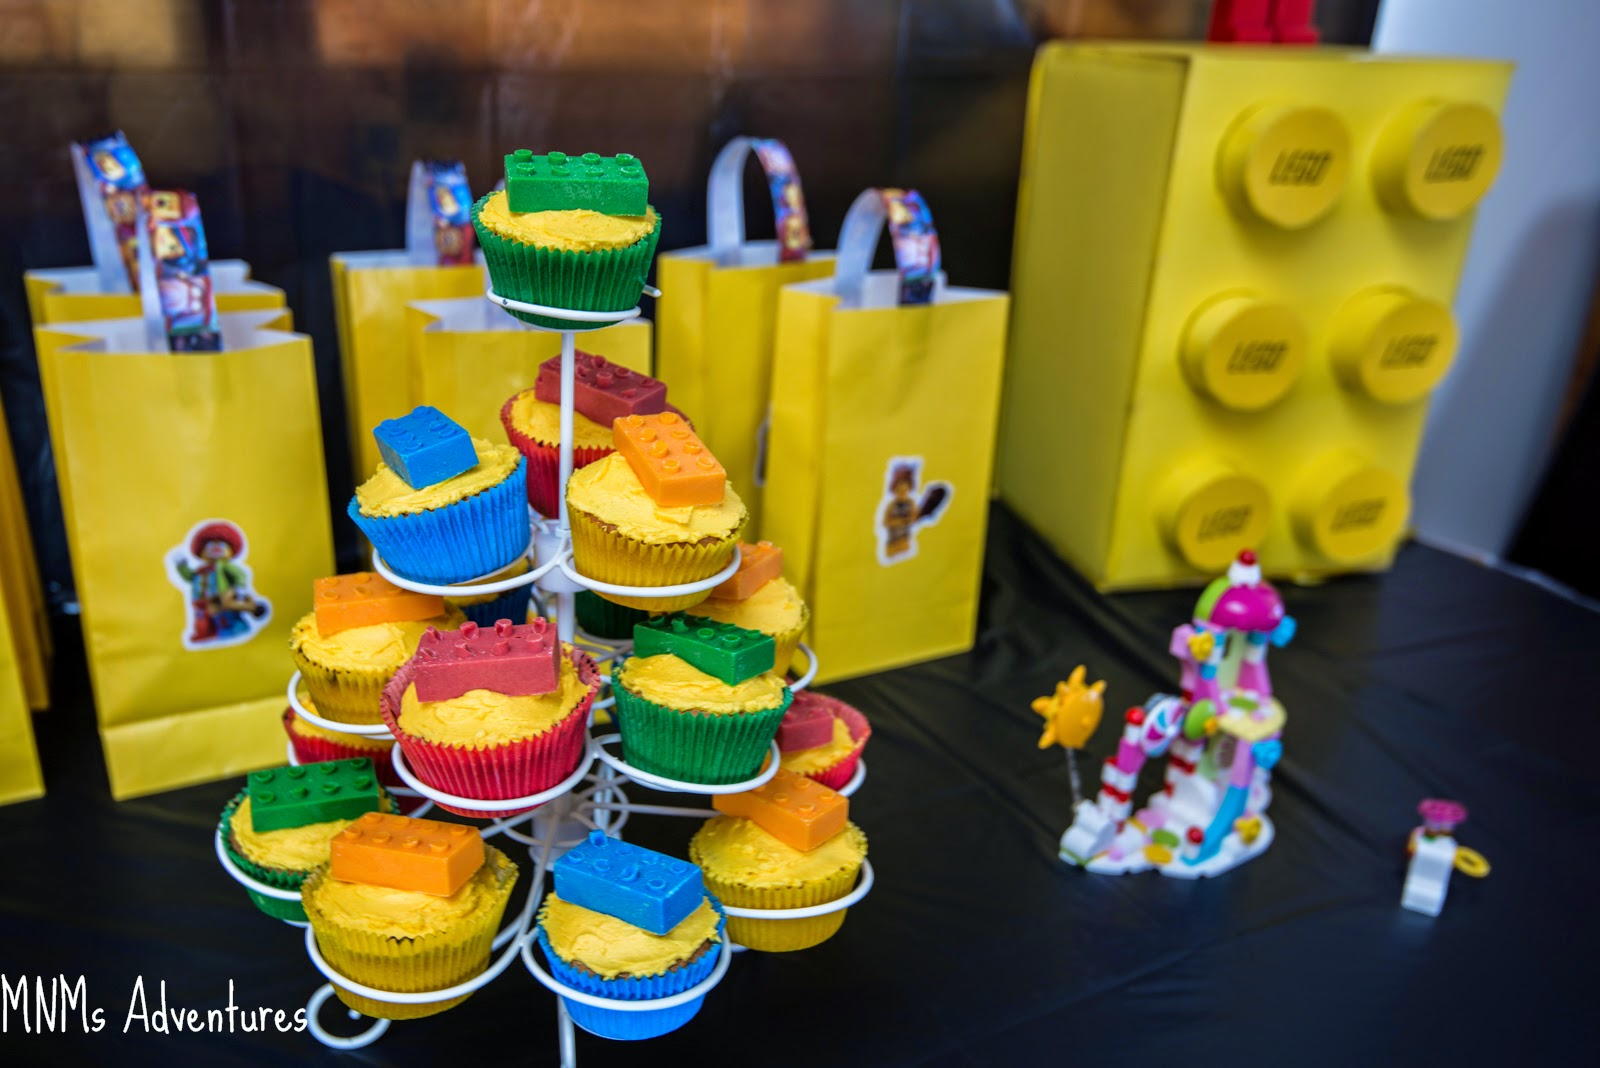 LEGO movie party theme cupcakes and bricks